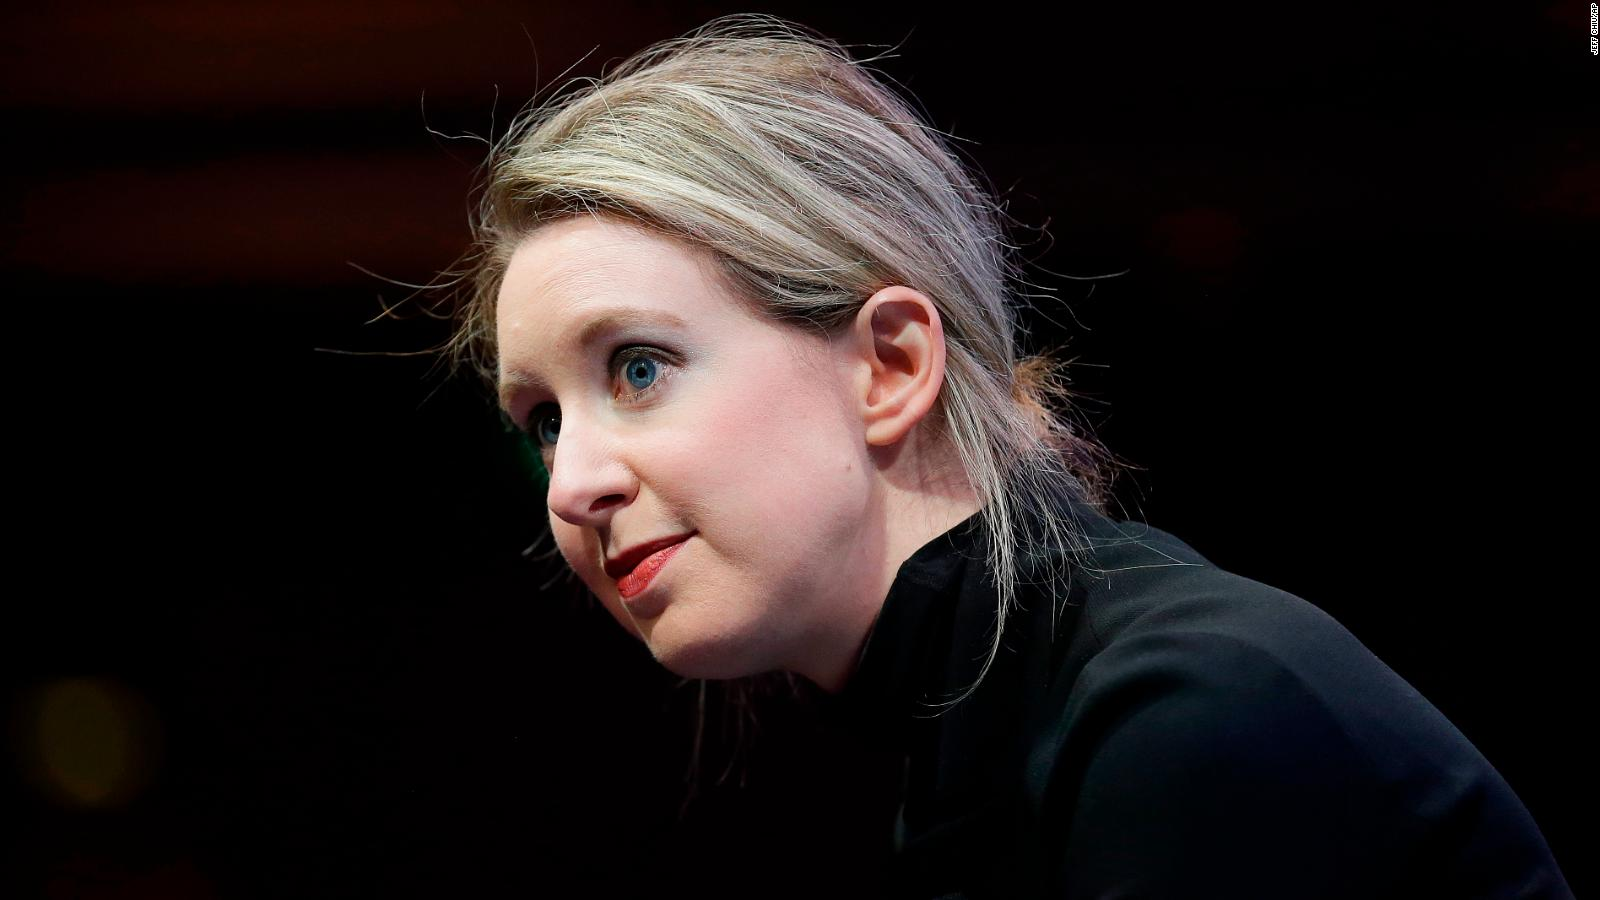 Director Of Theranos Documentary Calls Elizabeth Holmes Delusional